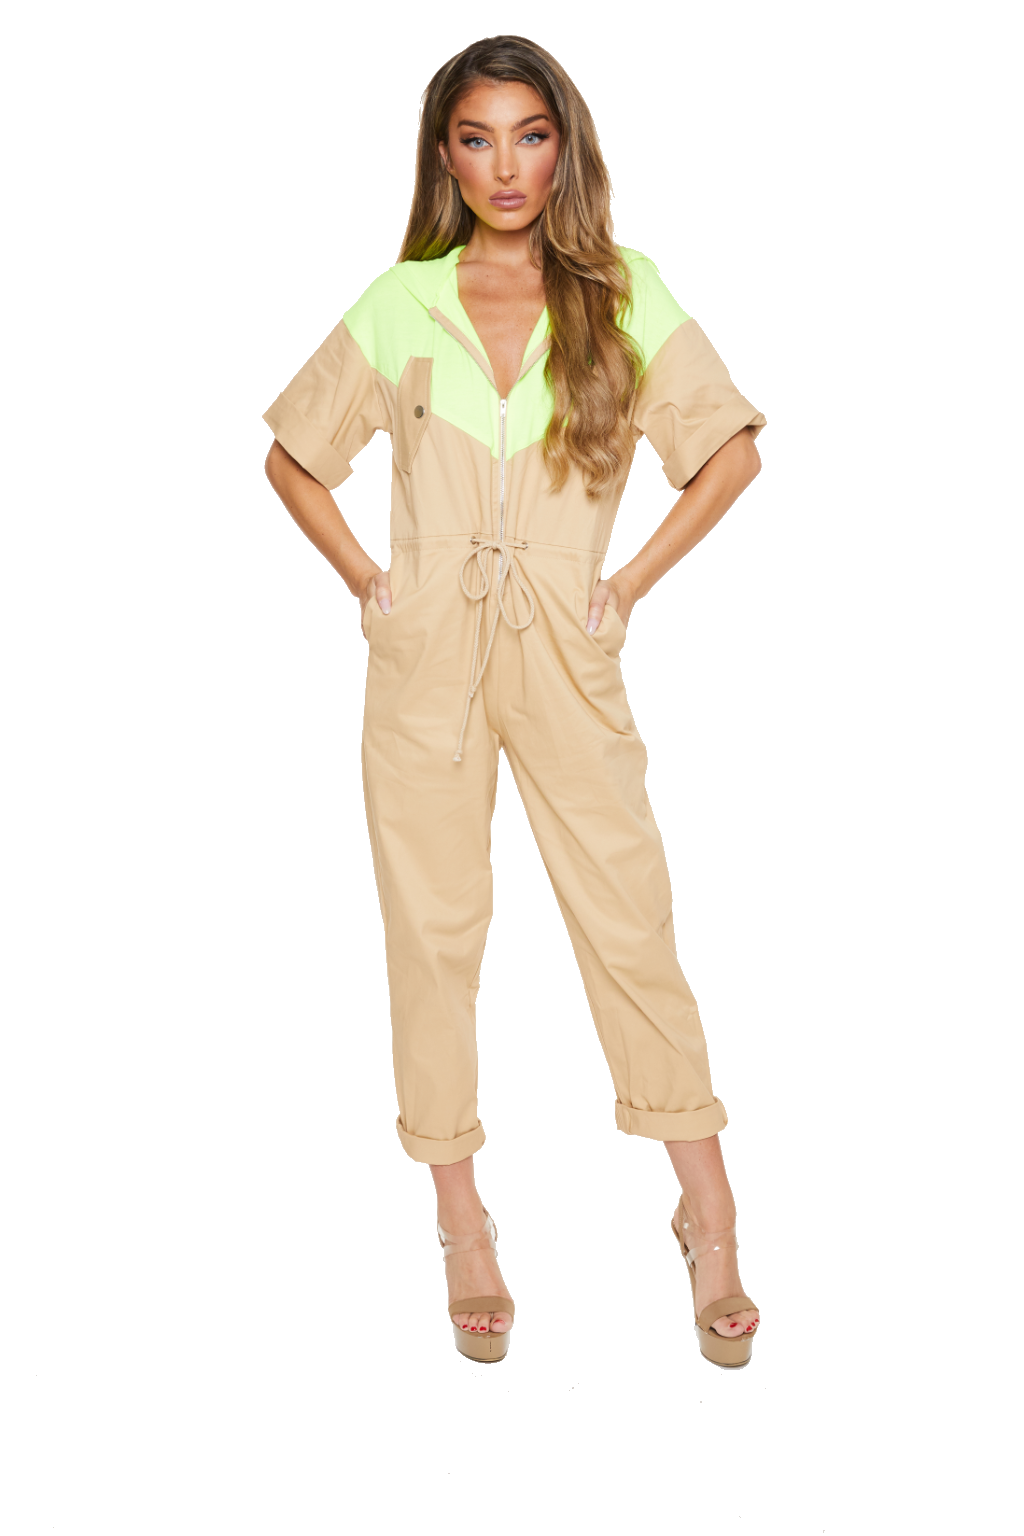 WERK'IT BOILERSUIT - www.prettyboutique.com